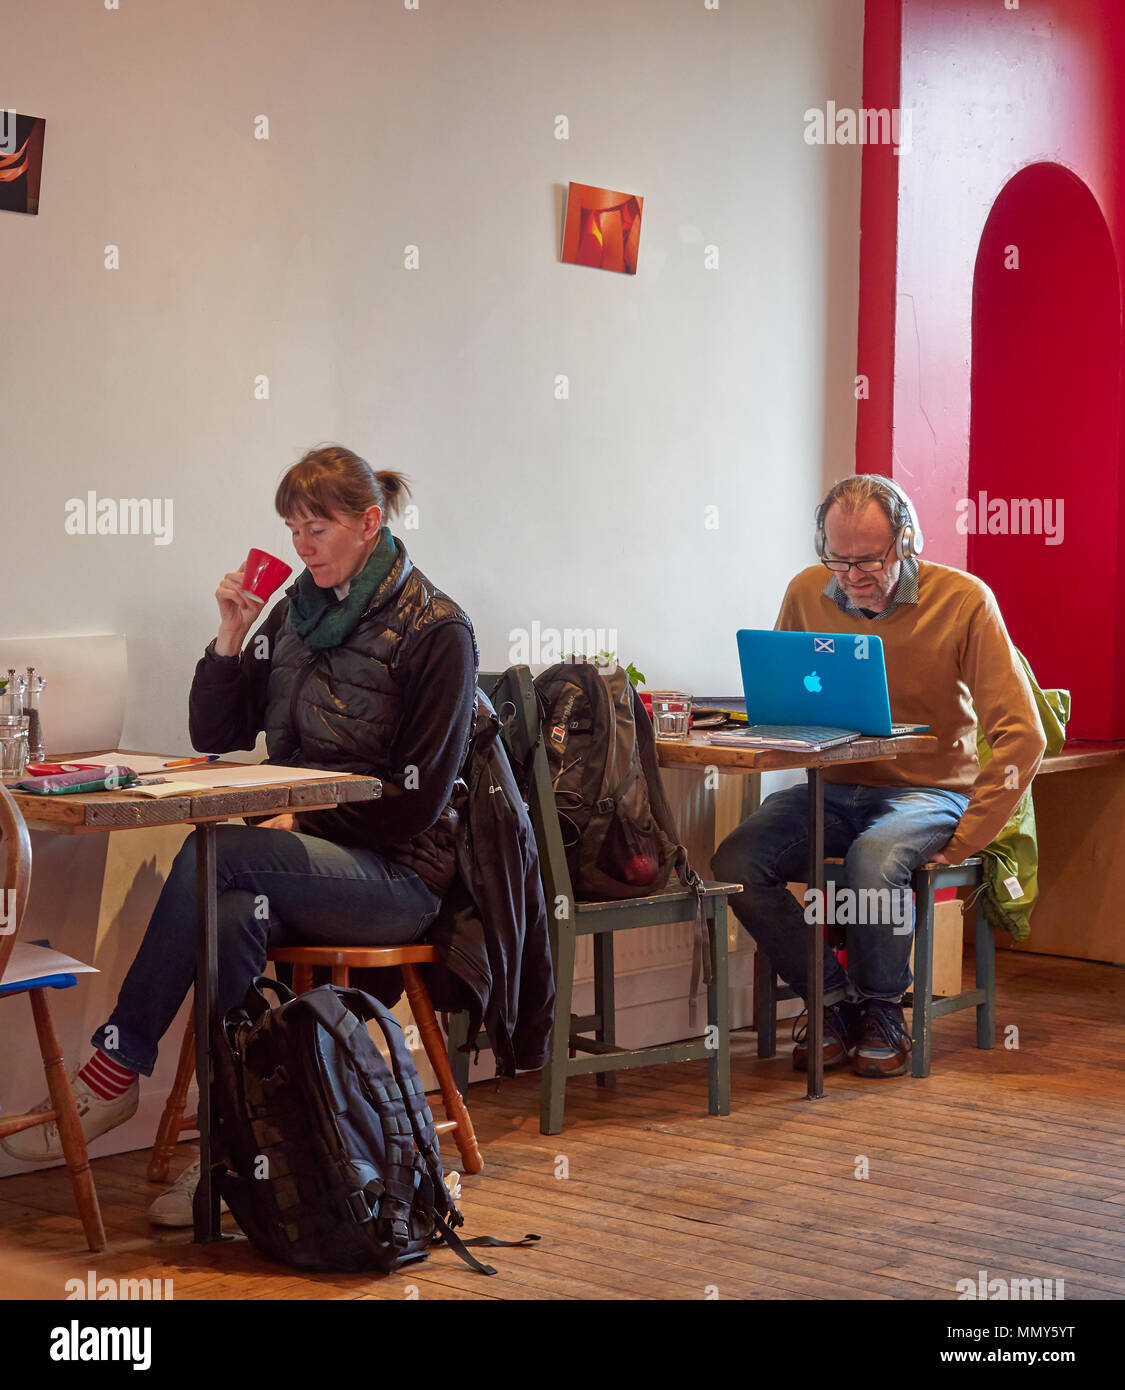 A Man and a Woman sitting at separate tables working using the free wifi of the Red Kite Cafe in Edinburgh while drinking Coffee. Scotland. - Stock Image